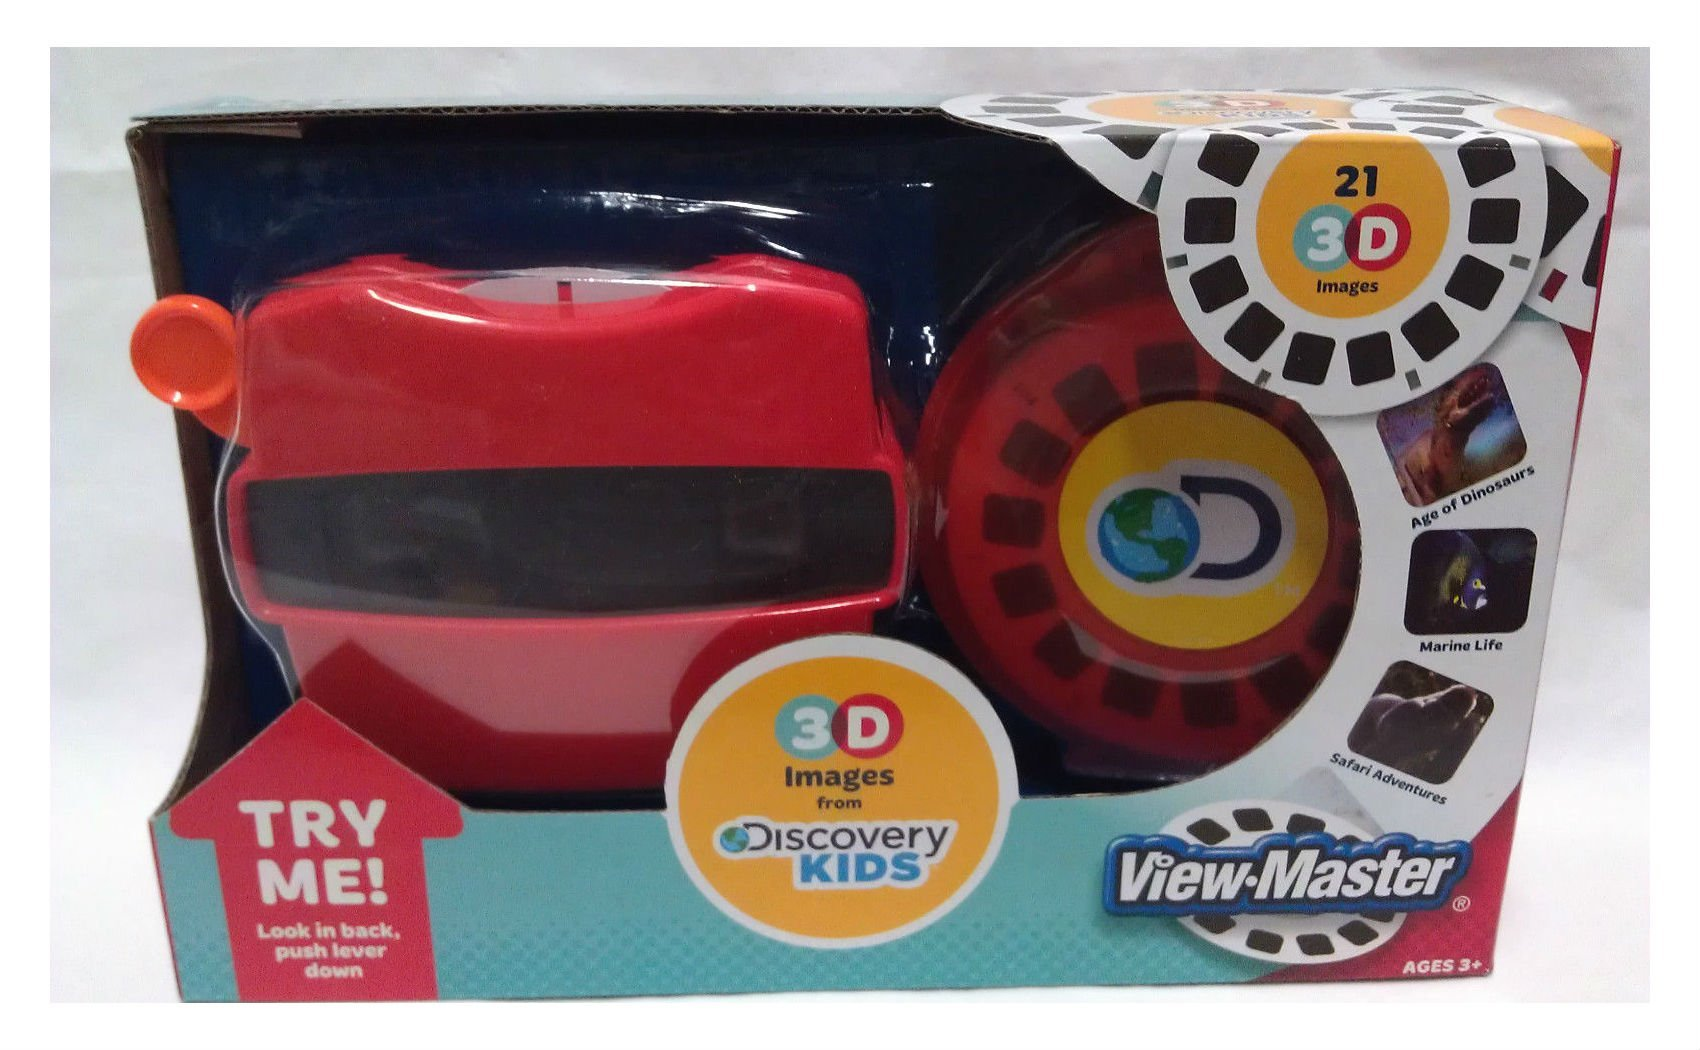 VIEW-MASTER VIEWMASTER 21 3D images DISCOVERY KIDS Dinosaurs marine safari NEW by na (Image #1)